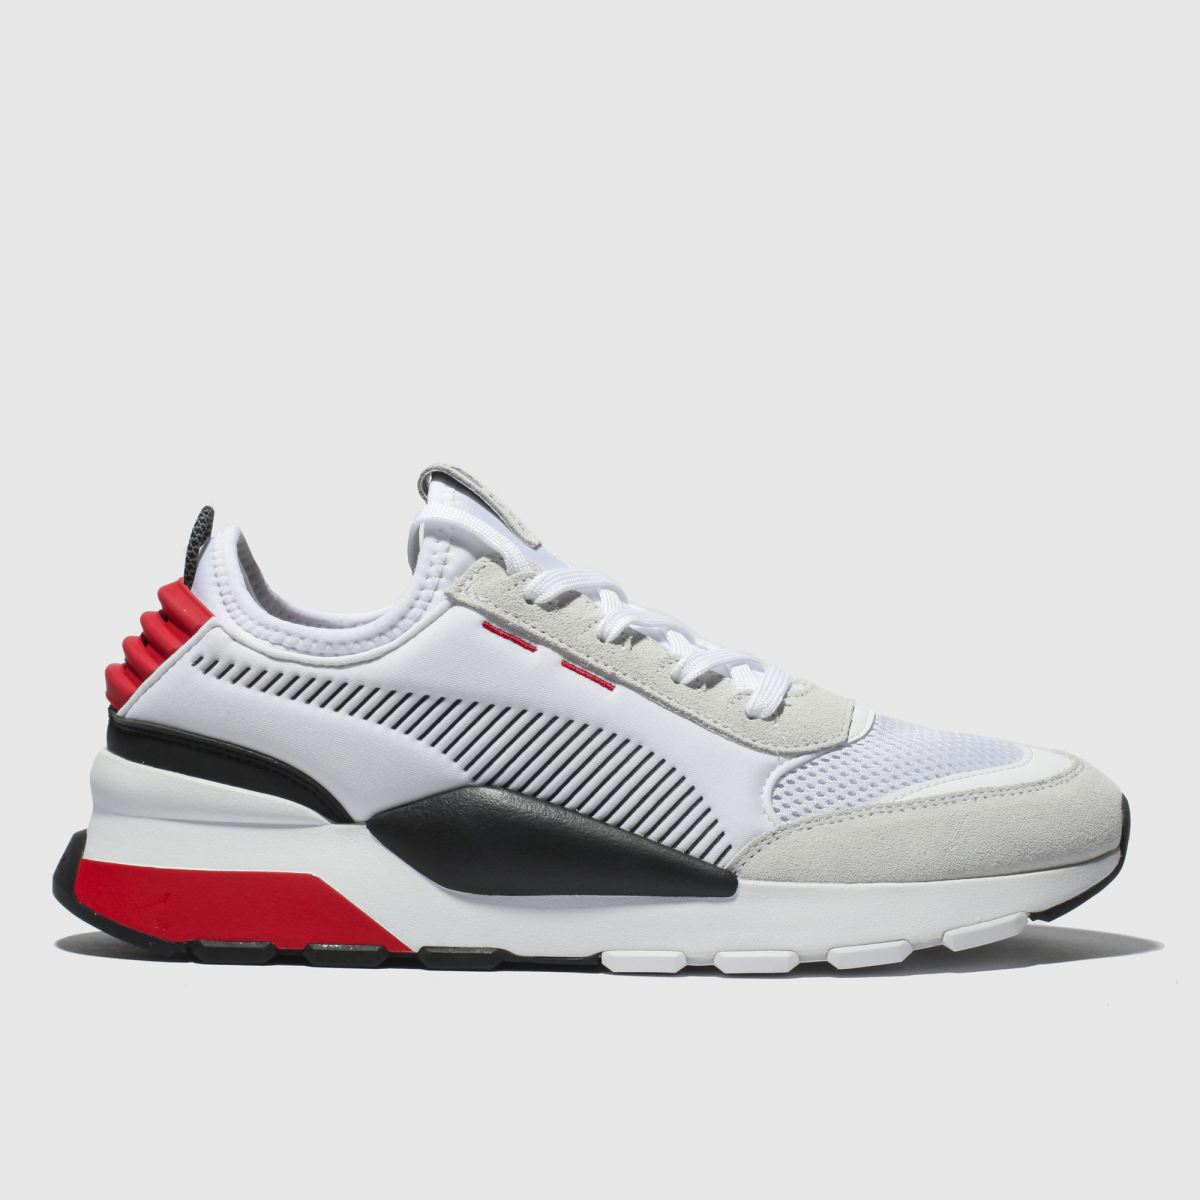 Puma White & Red Rs-0 Winter Inj Toys Trainers